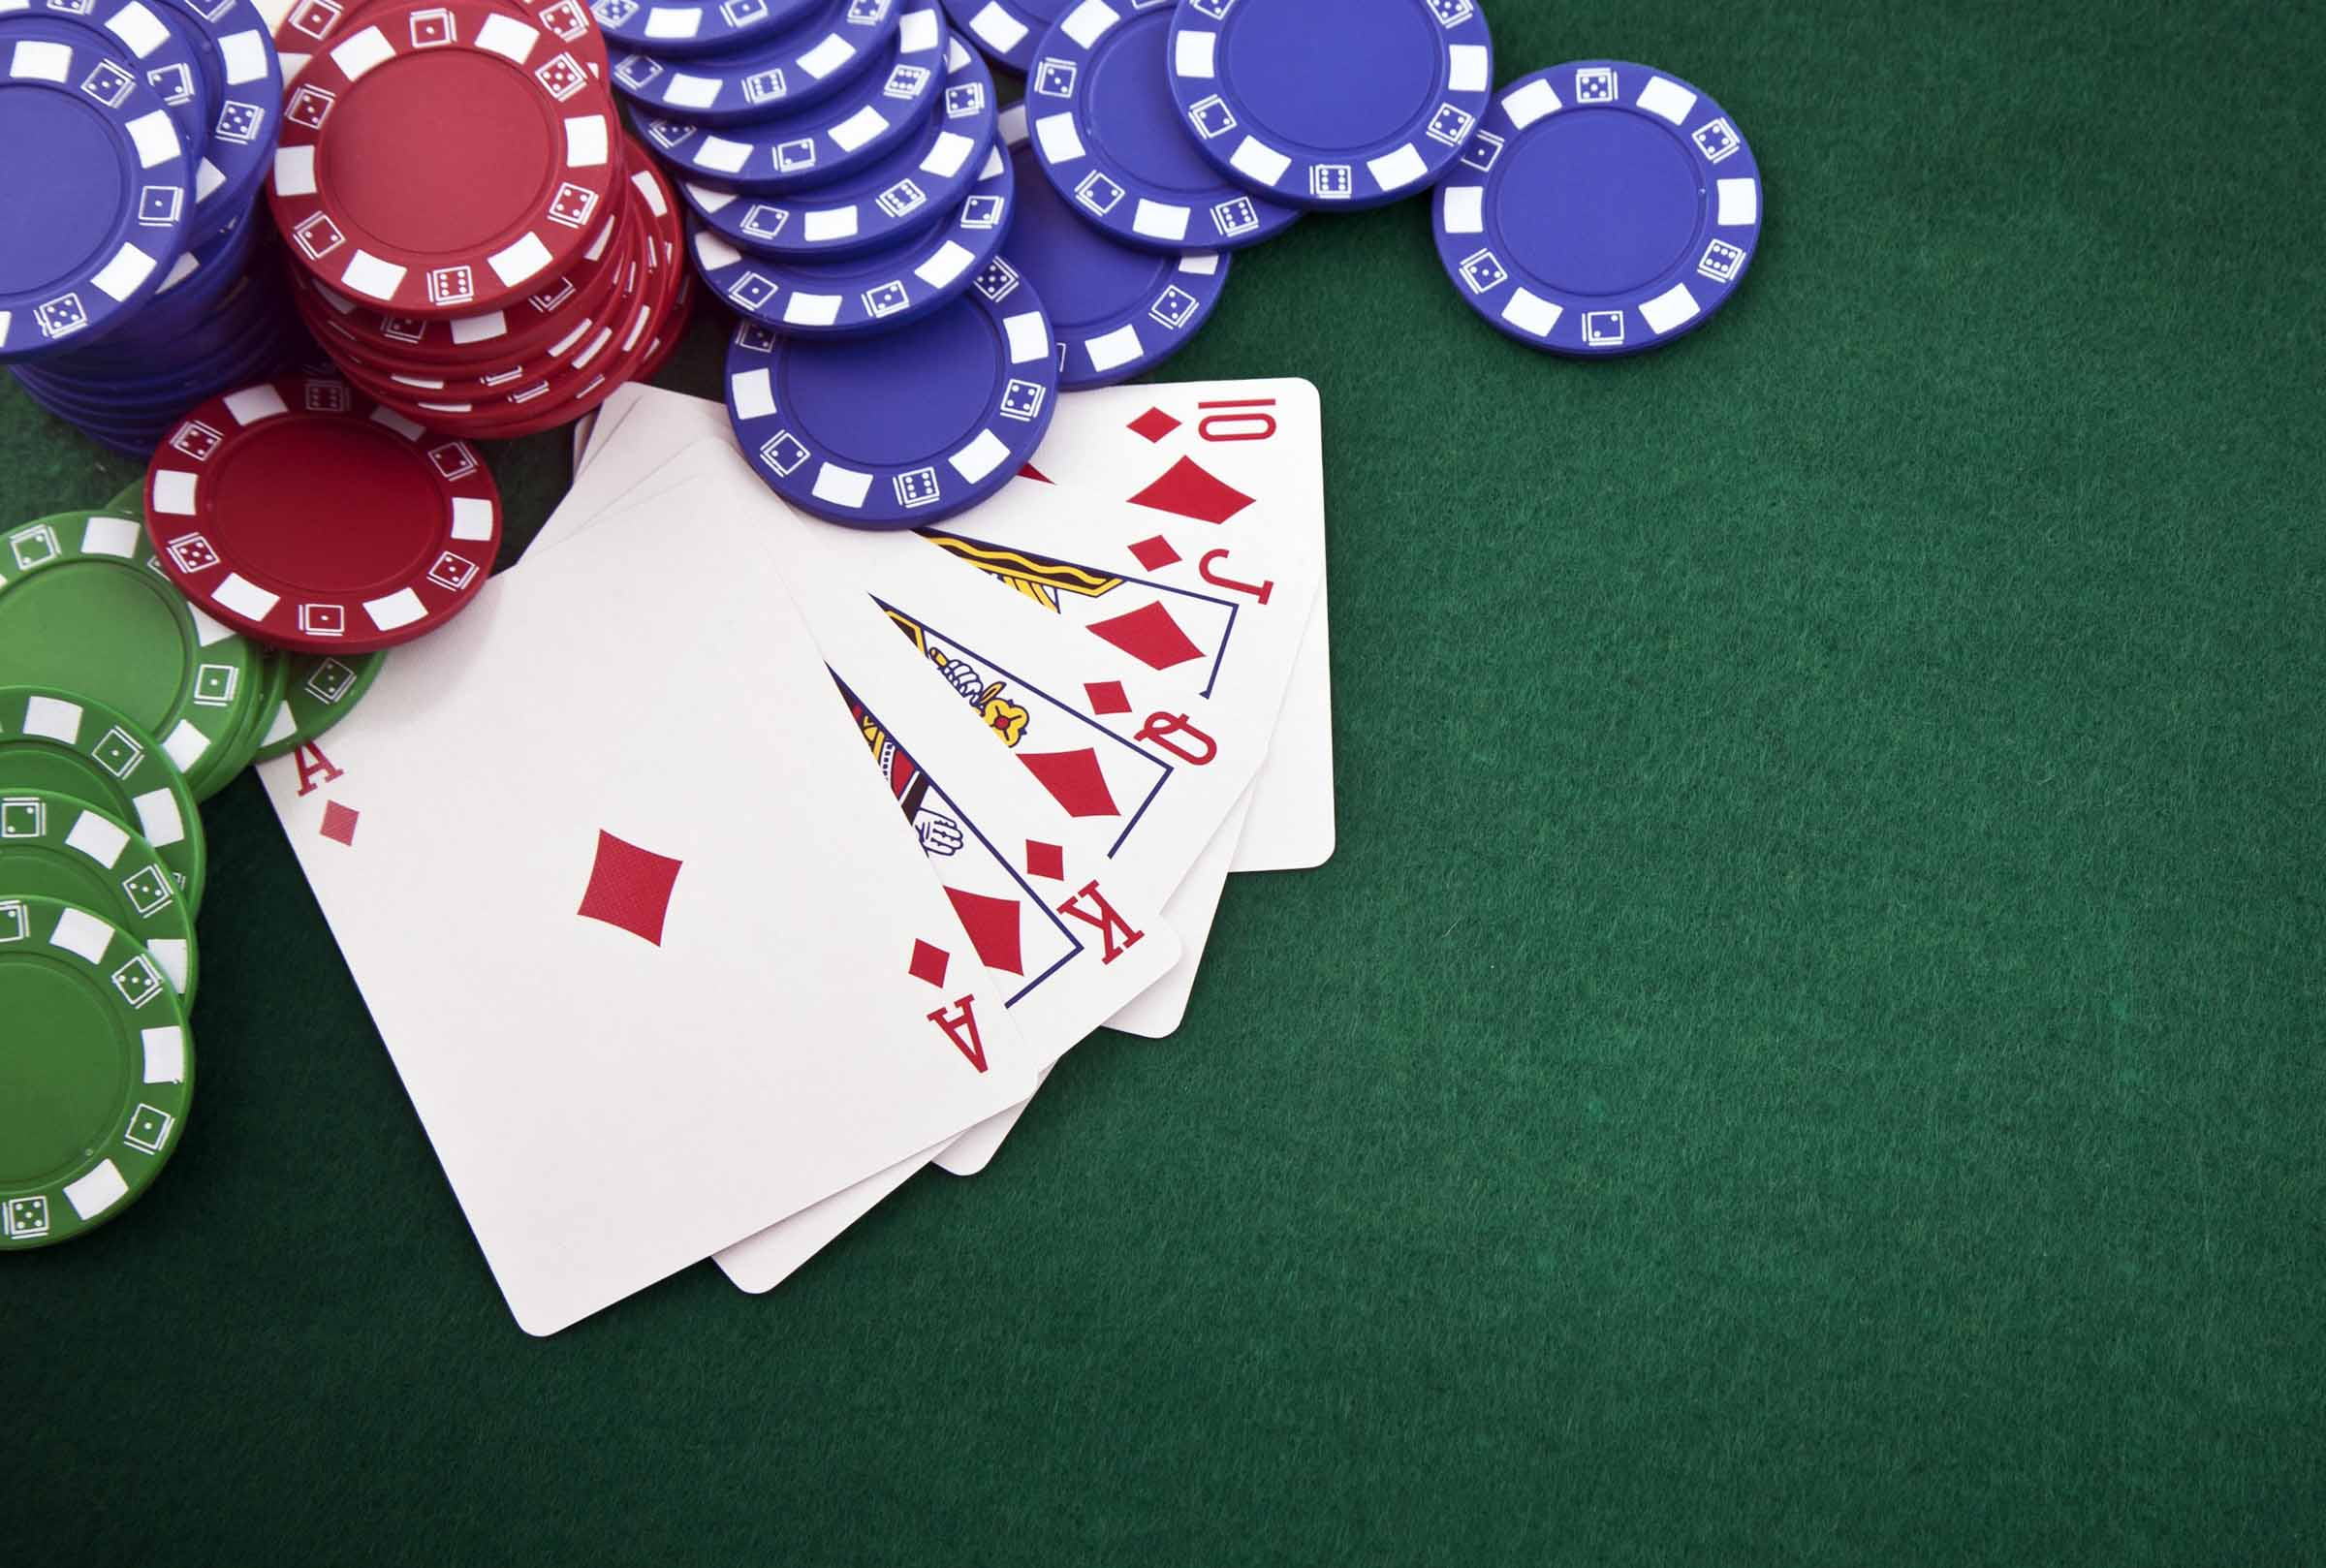 The Lies Of The Green Poker Table